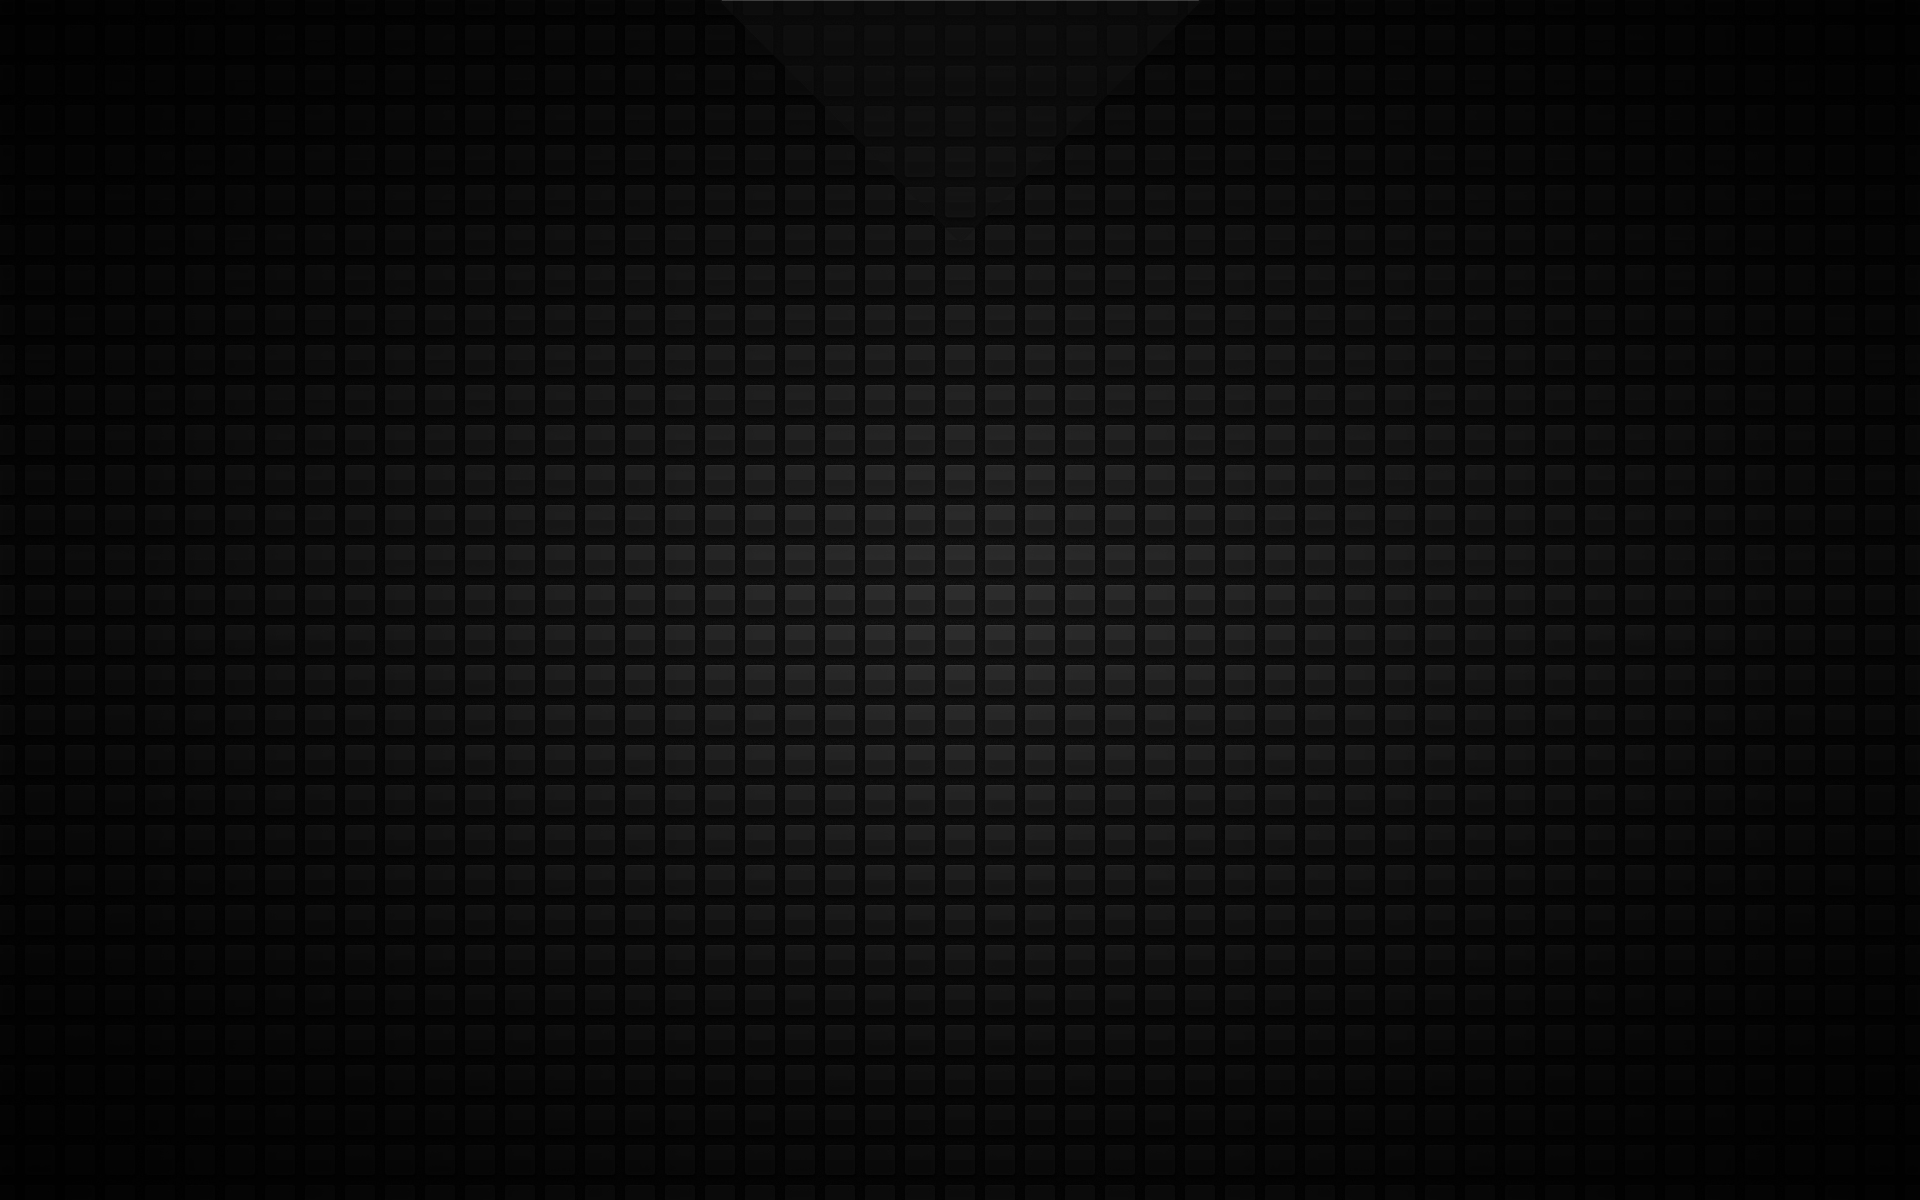 Black Wallpaper Background Free Download